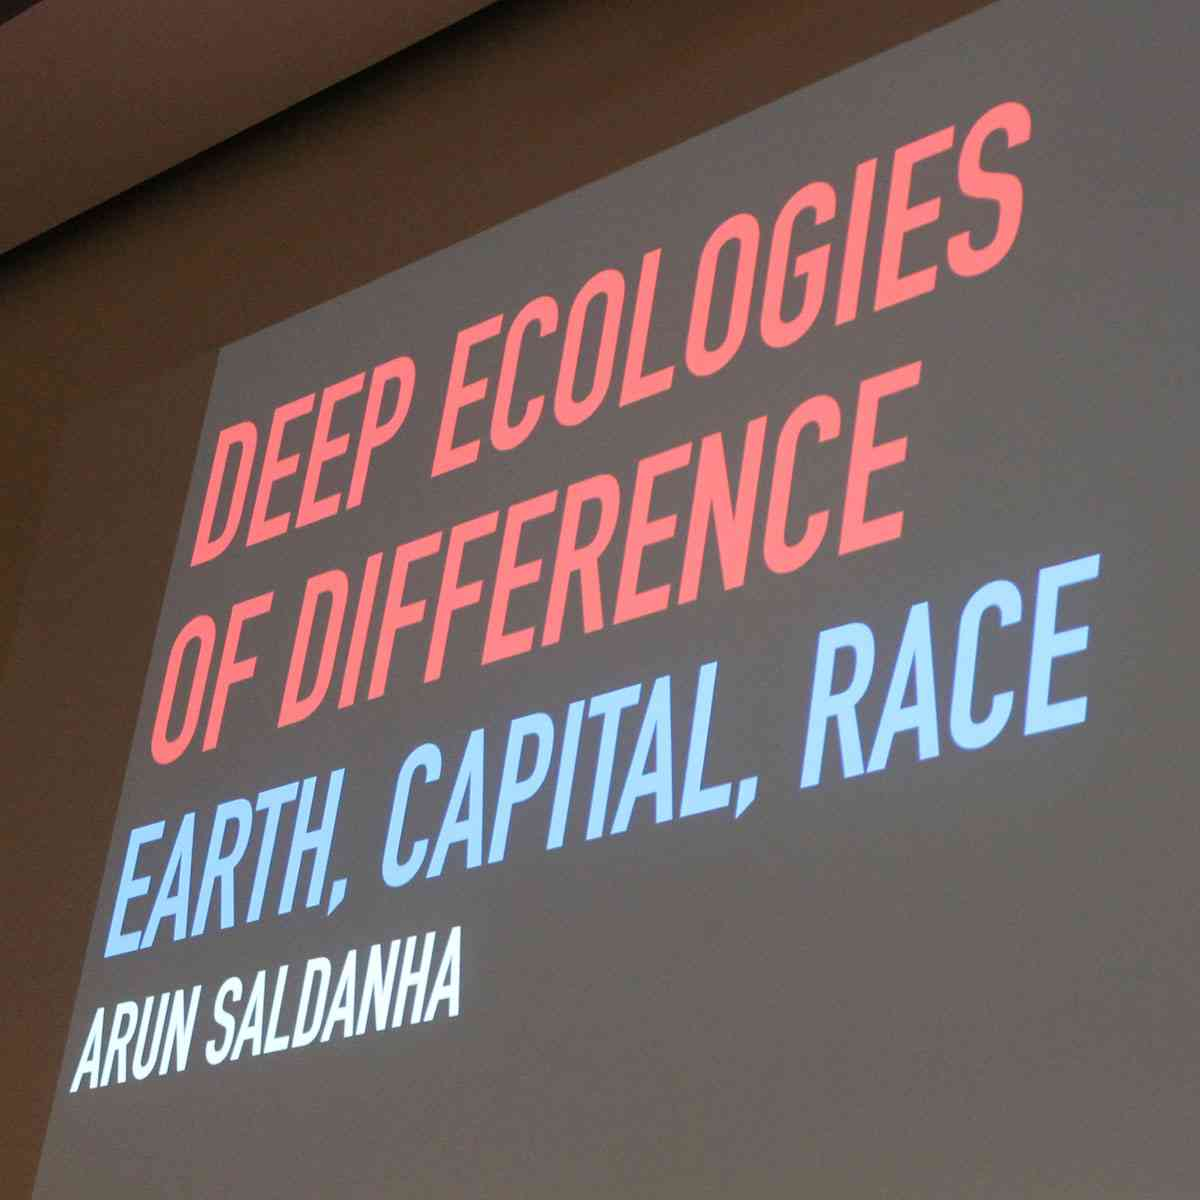 Arun Saldanha - Professor Arun Saldanha (University of Minnesota) has been teaching at the Department of Geography since 2004. From 2016-18 he is Image Fund Arts, Design and Humanities Chair.